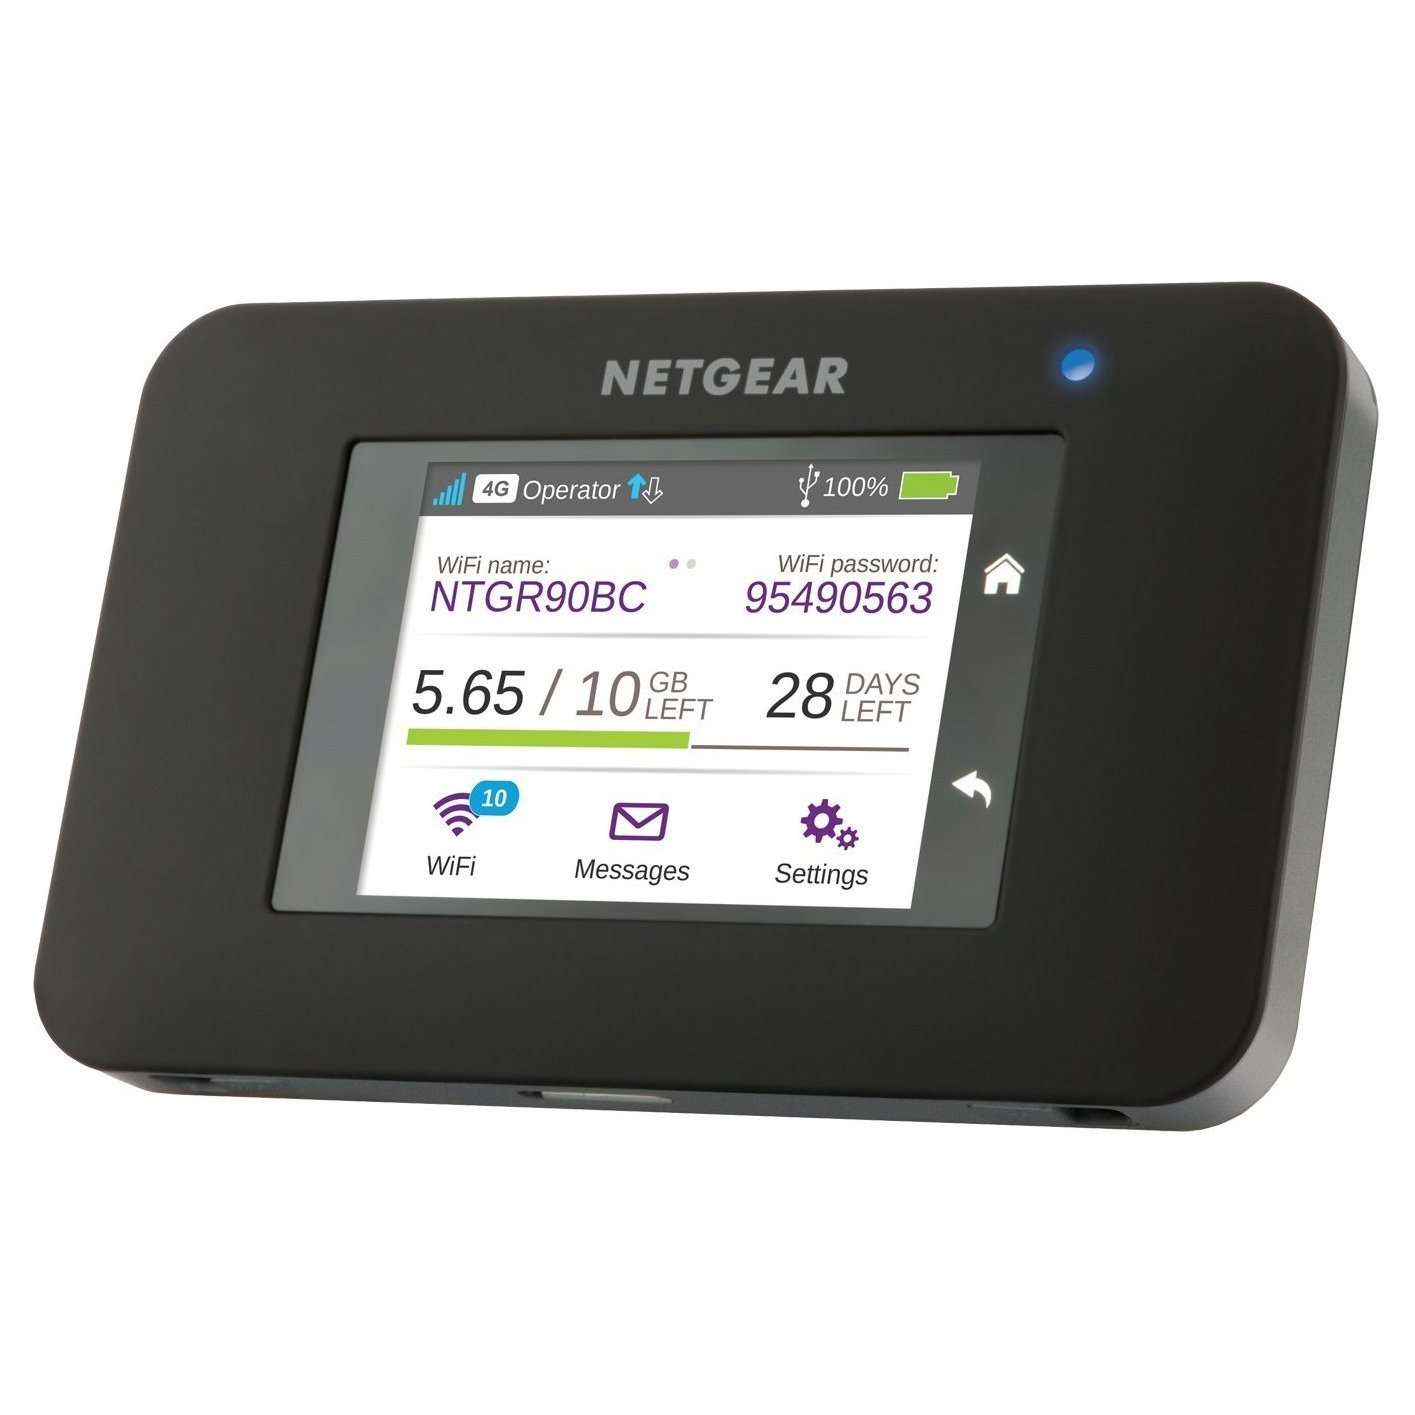 netgear ac790 modem routeur netgear sur. Black Bedroom Furniture Sets. Home Design Ideas